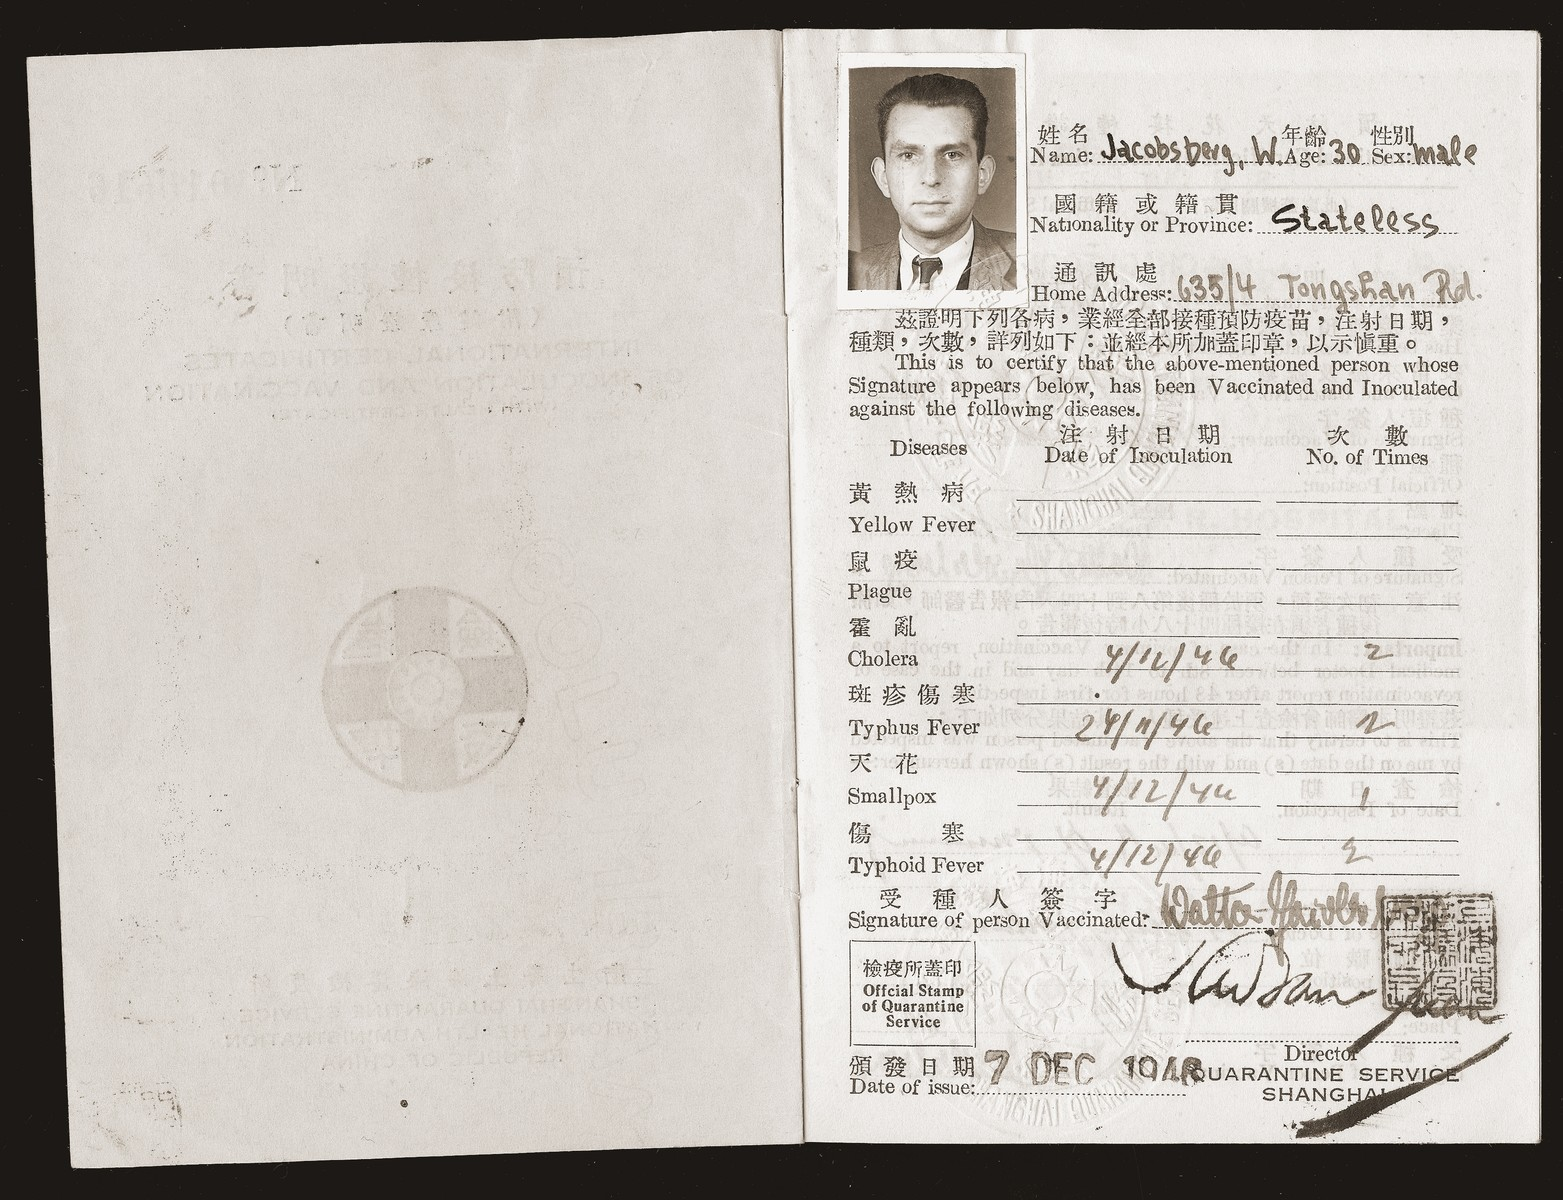 A vaccination certificate issued to Walter Jacobsberg by the Shanghai Quarantine Service.